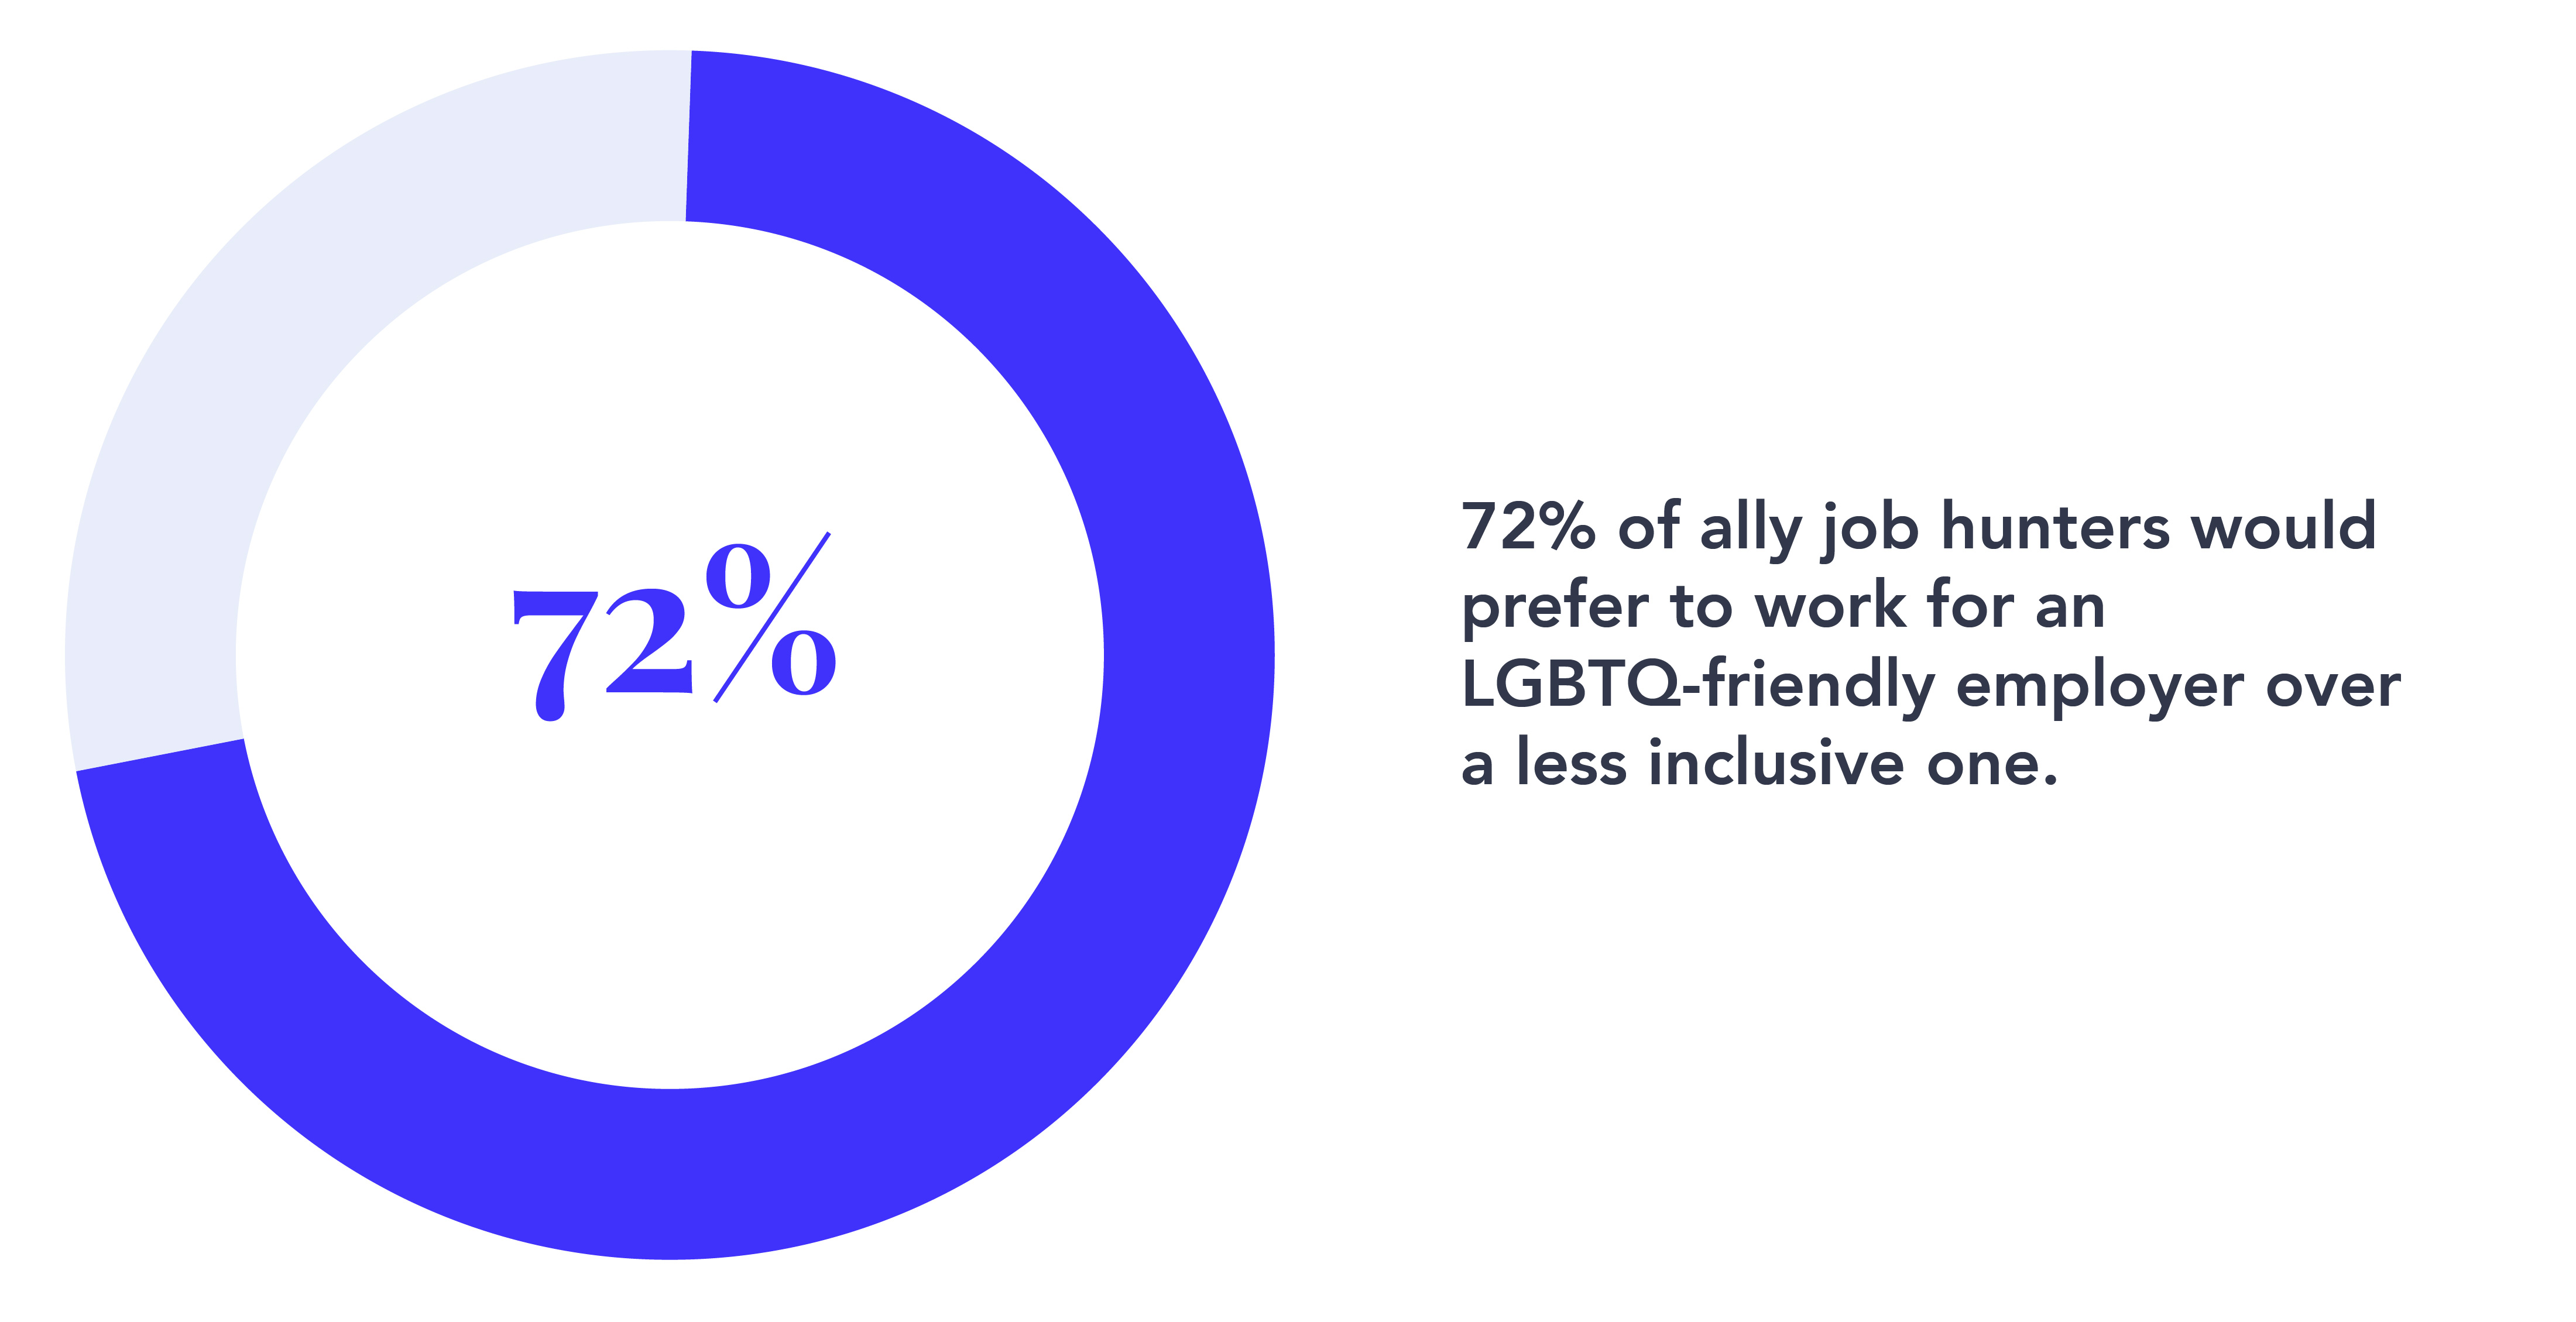 72% of job hunters prefer to work for LGBTQ-friendly employers